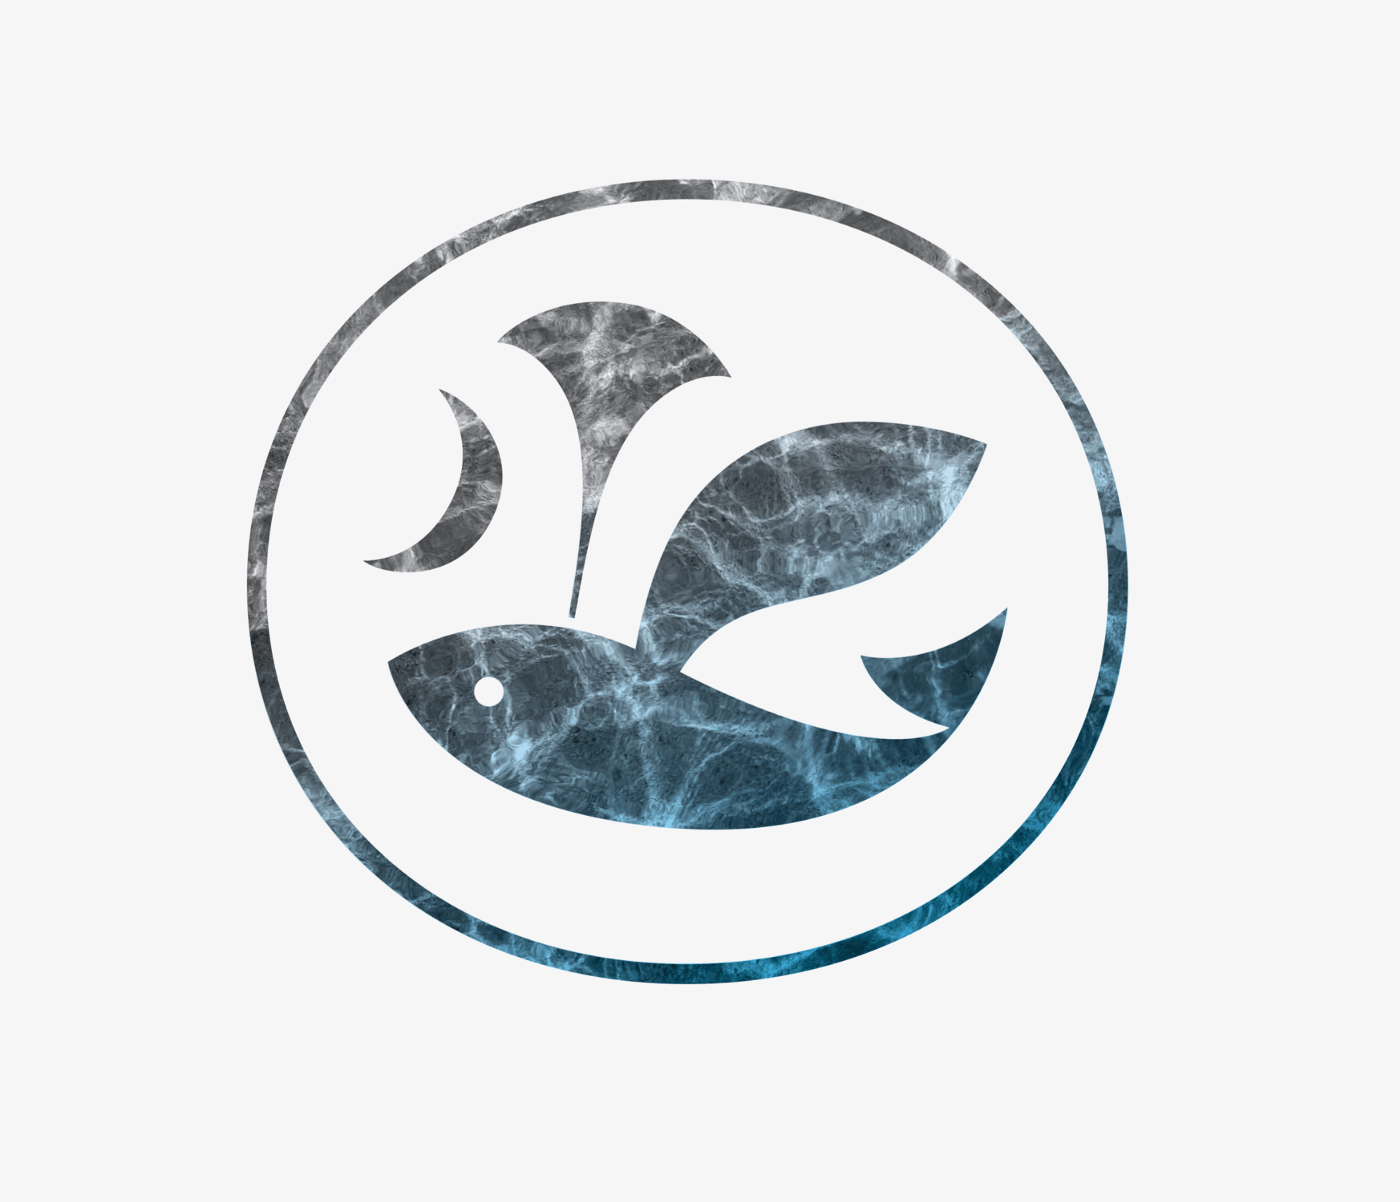 Blue-gray water texture winged-dolphin logo mark in circle